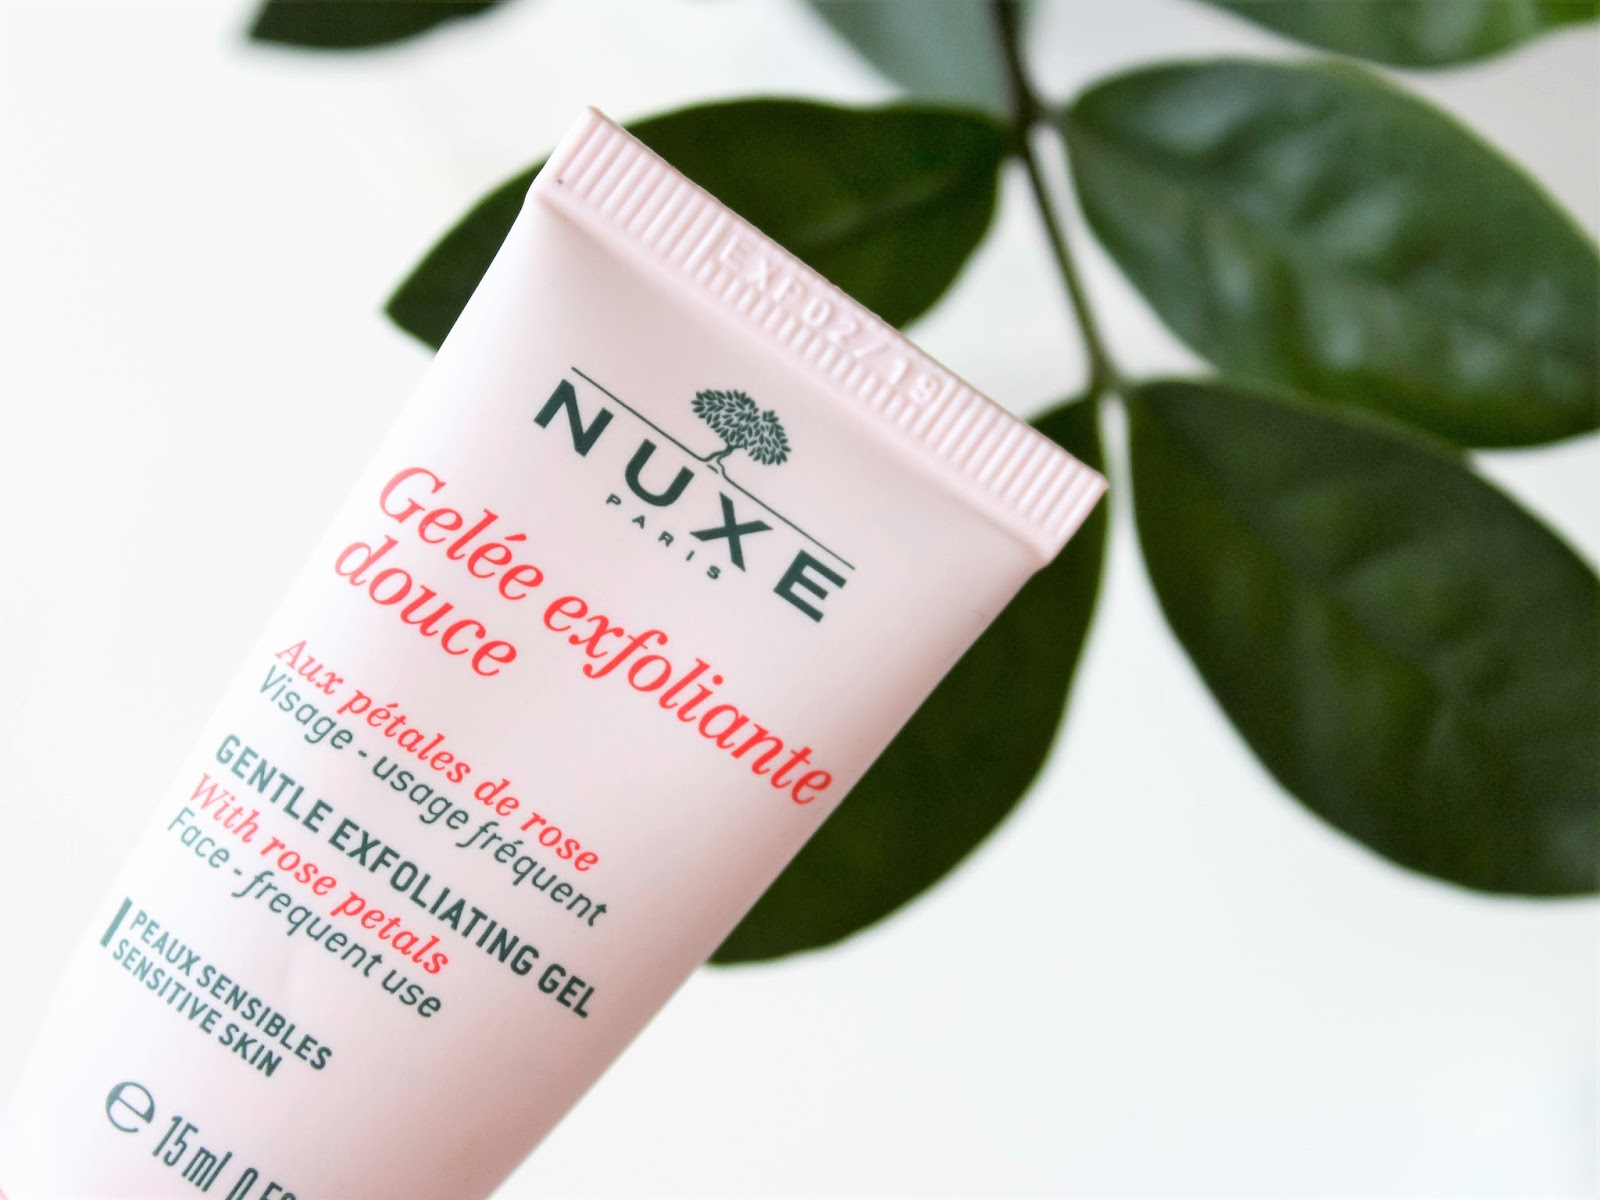 nuxe exfoliacni gel